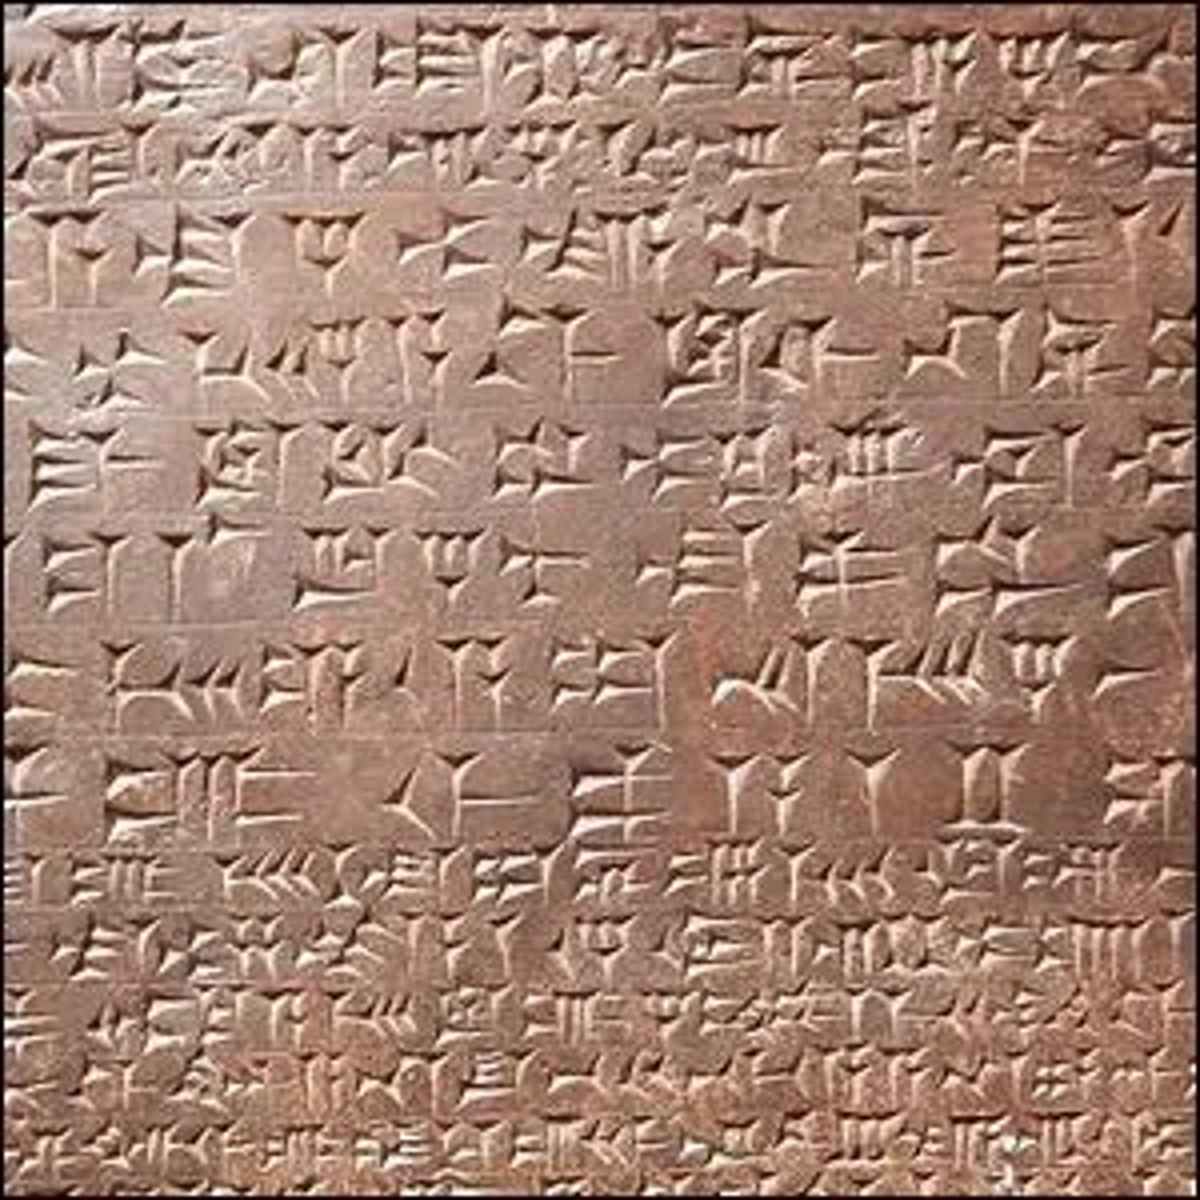 A fragment of a stone relief carved with the 'standard inscription' that records kings' names, titles, and ancestry in Assyrian.